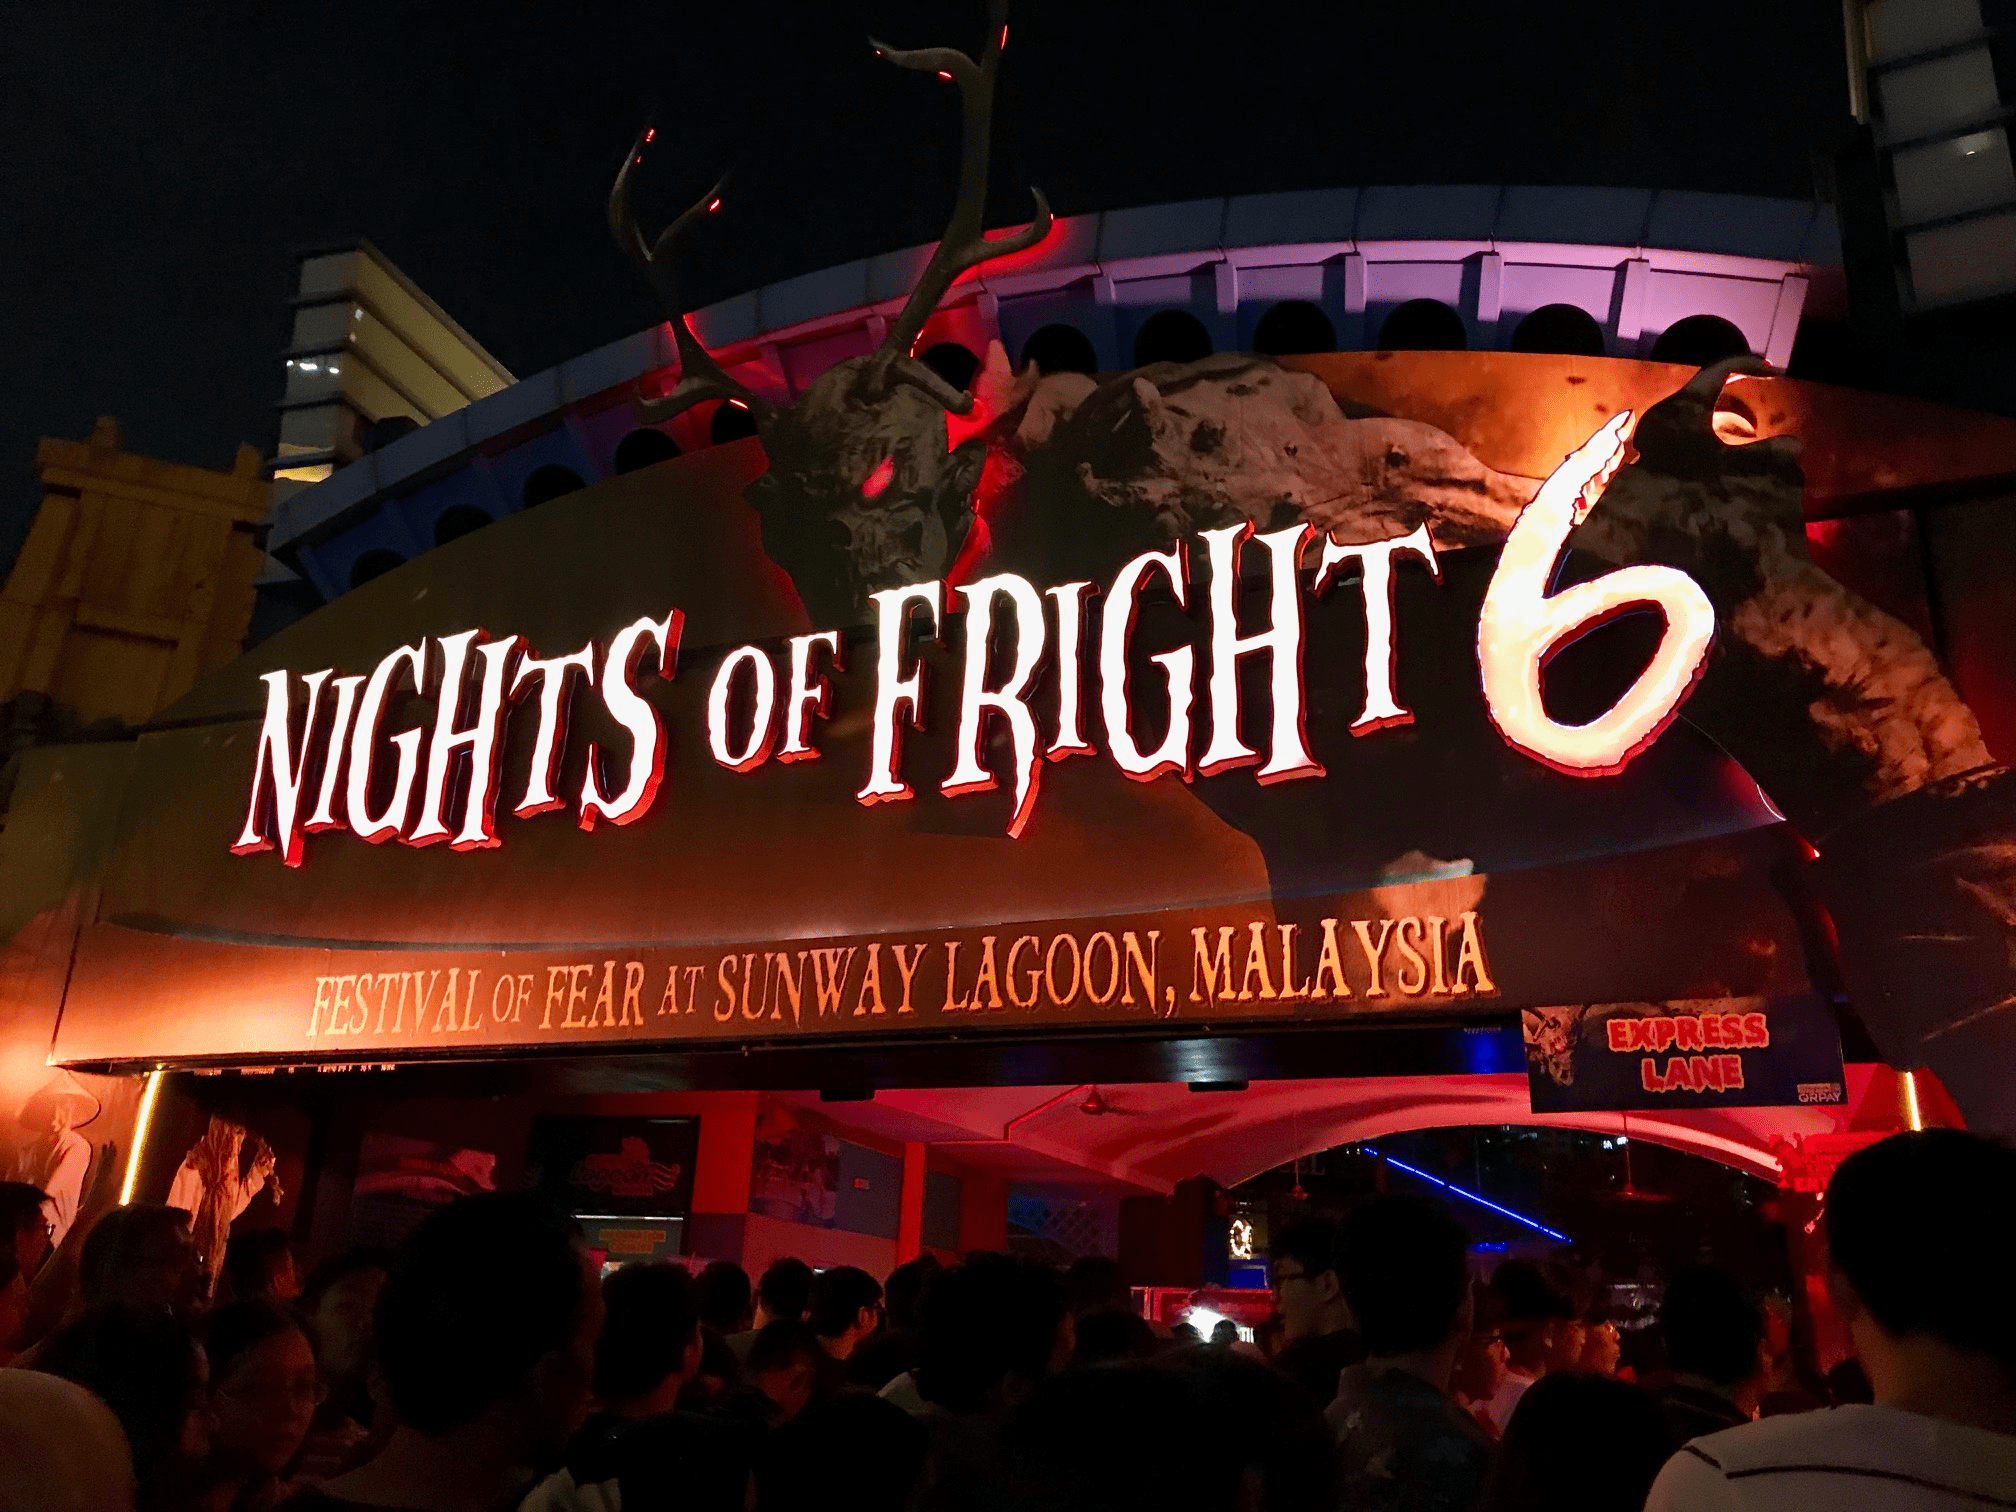 Nights of Fright